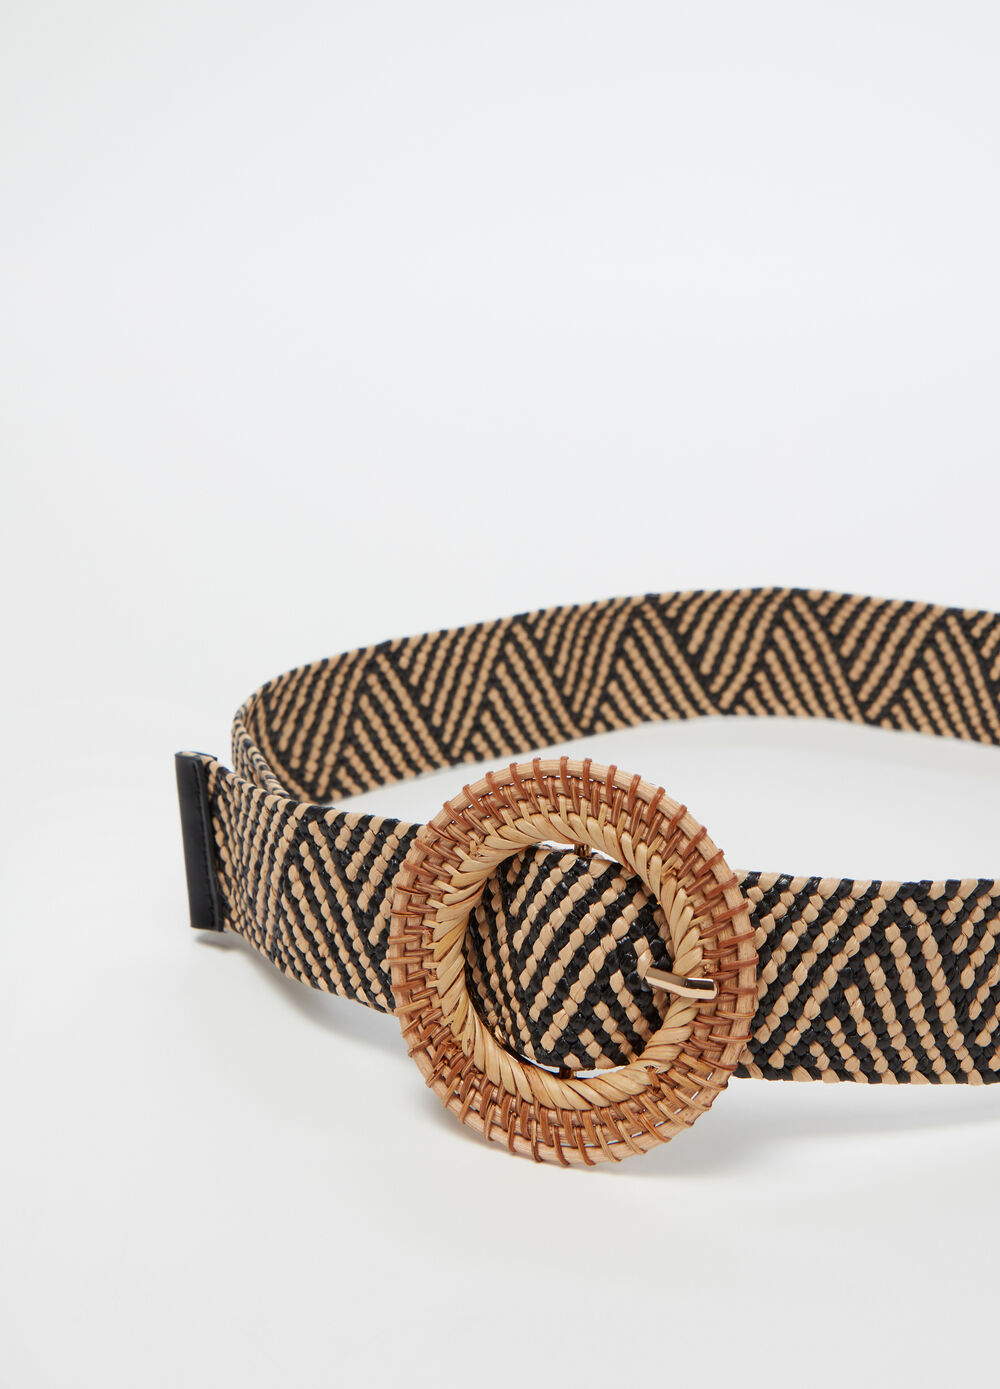 Geometric belt with braided buckle